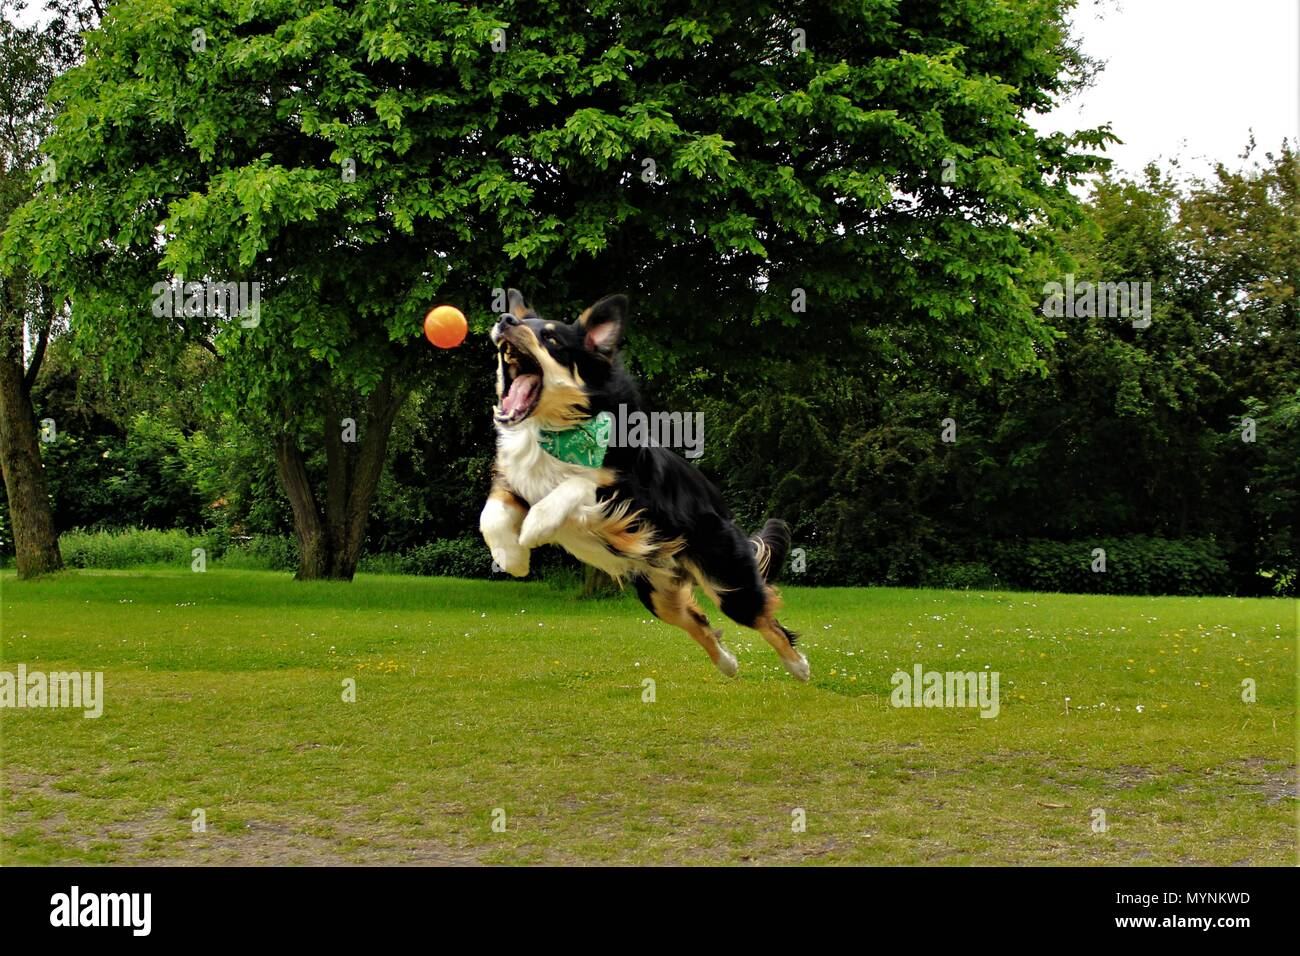 A male Collie X dog leaping through the air to catch his ball. - Stock Image